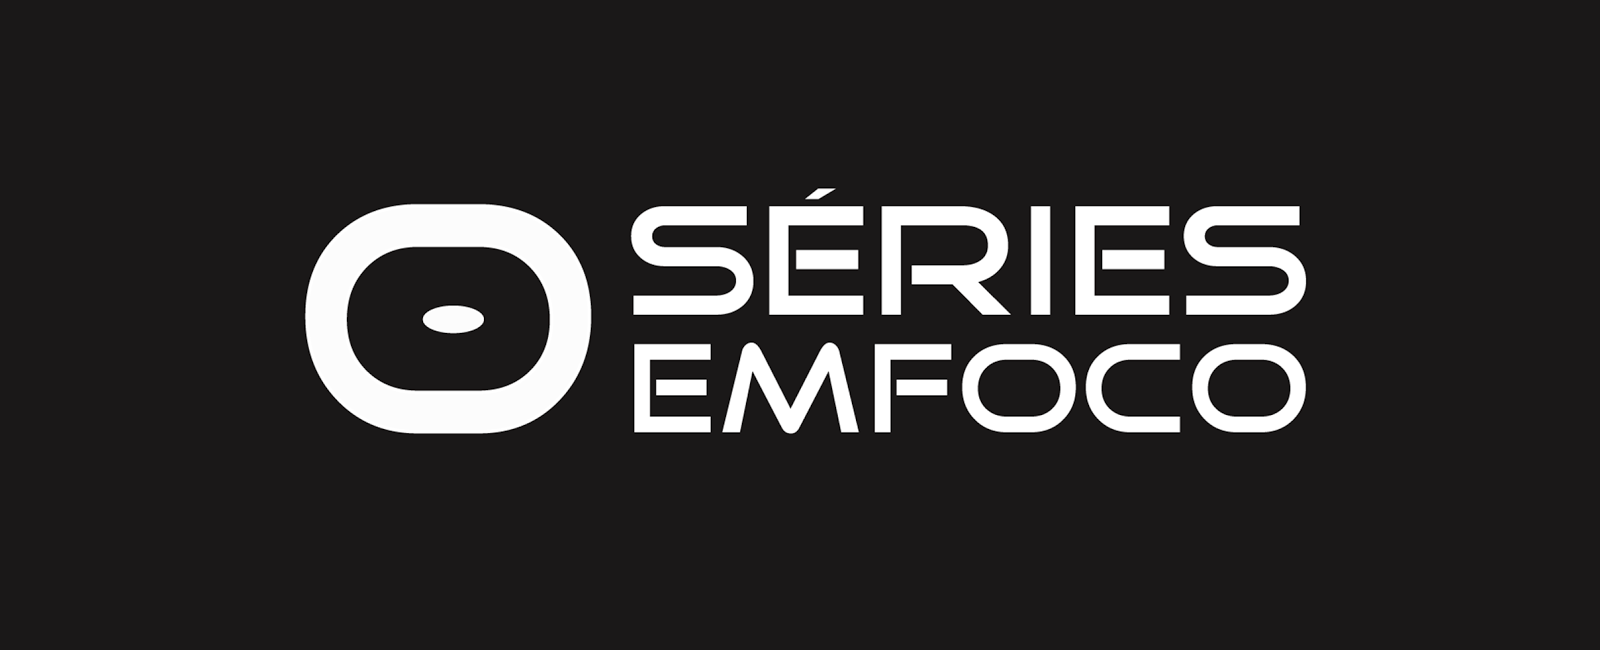 Séries Em Foco | Opinião é Tudo